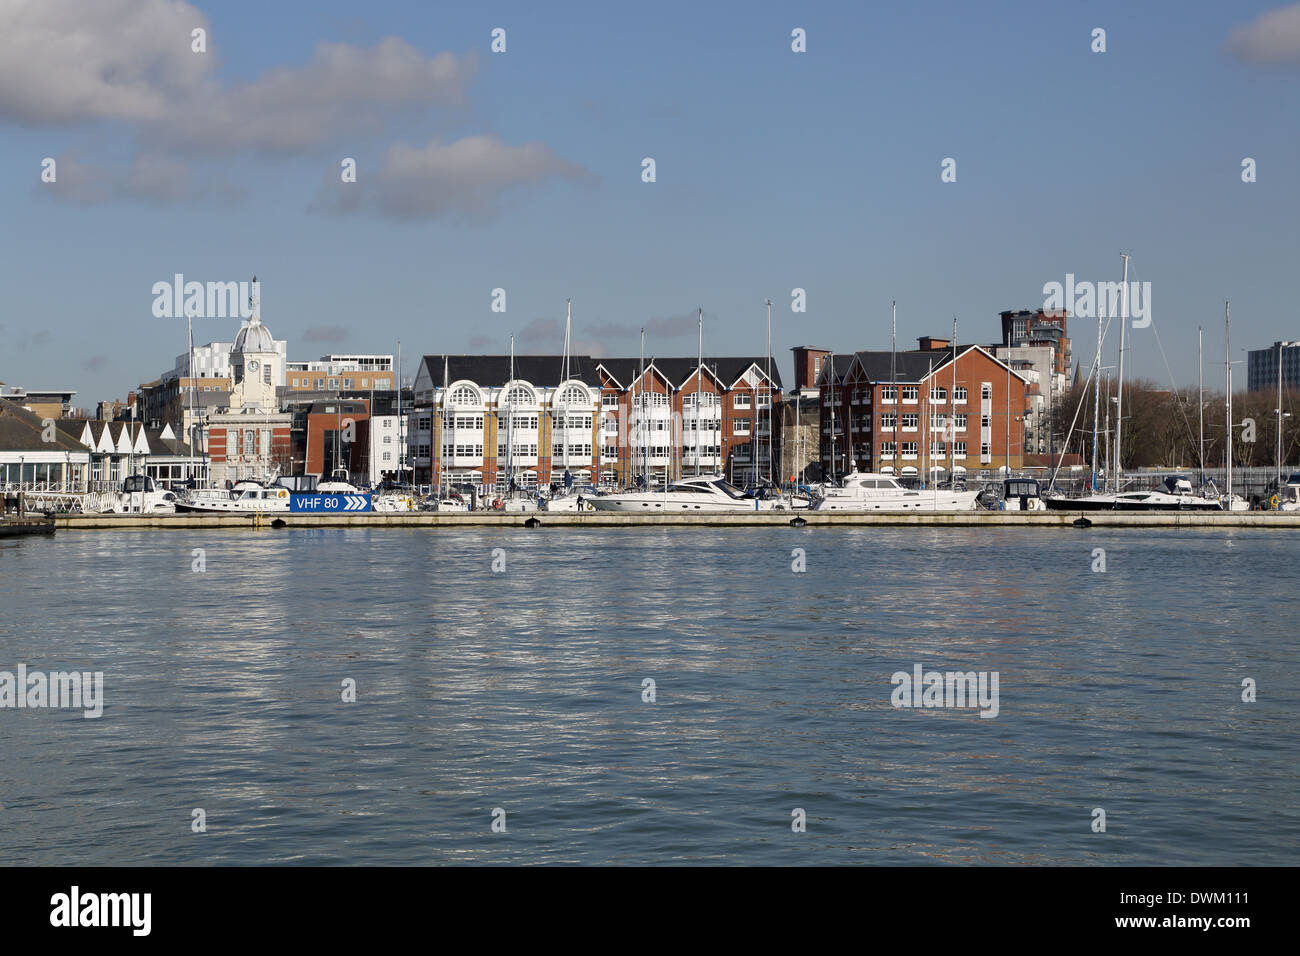 the city and port of southampton on the south coast of England as seen from Town Quay - Stock Image